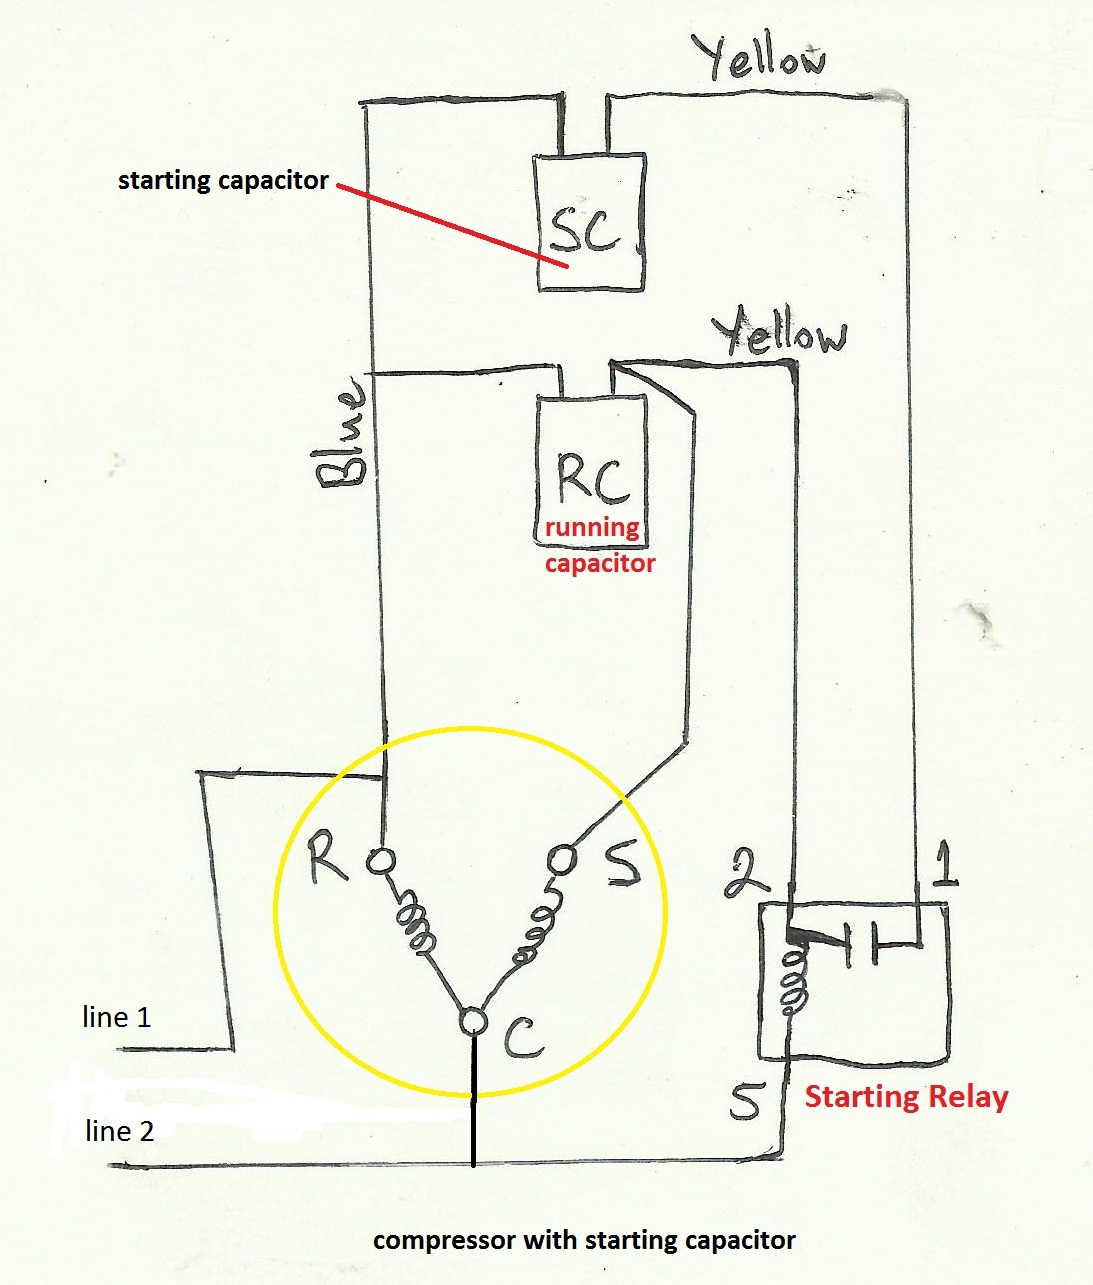 wiring diagram for whirlpool washing machine with Wiring Diagram Of  Pressor With on Icemachine parts further Kenmore Front Load Washing Machine moreover Direct Drive Washer Help besides Wiring Diagram For Samsung Washer as well Appliance.